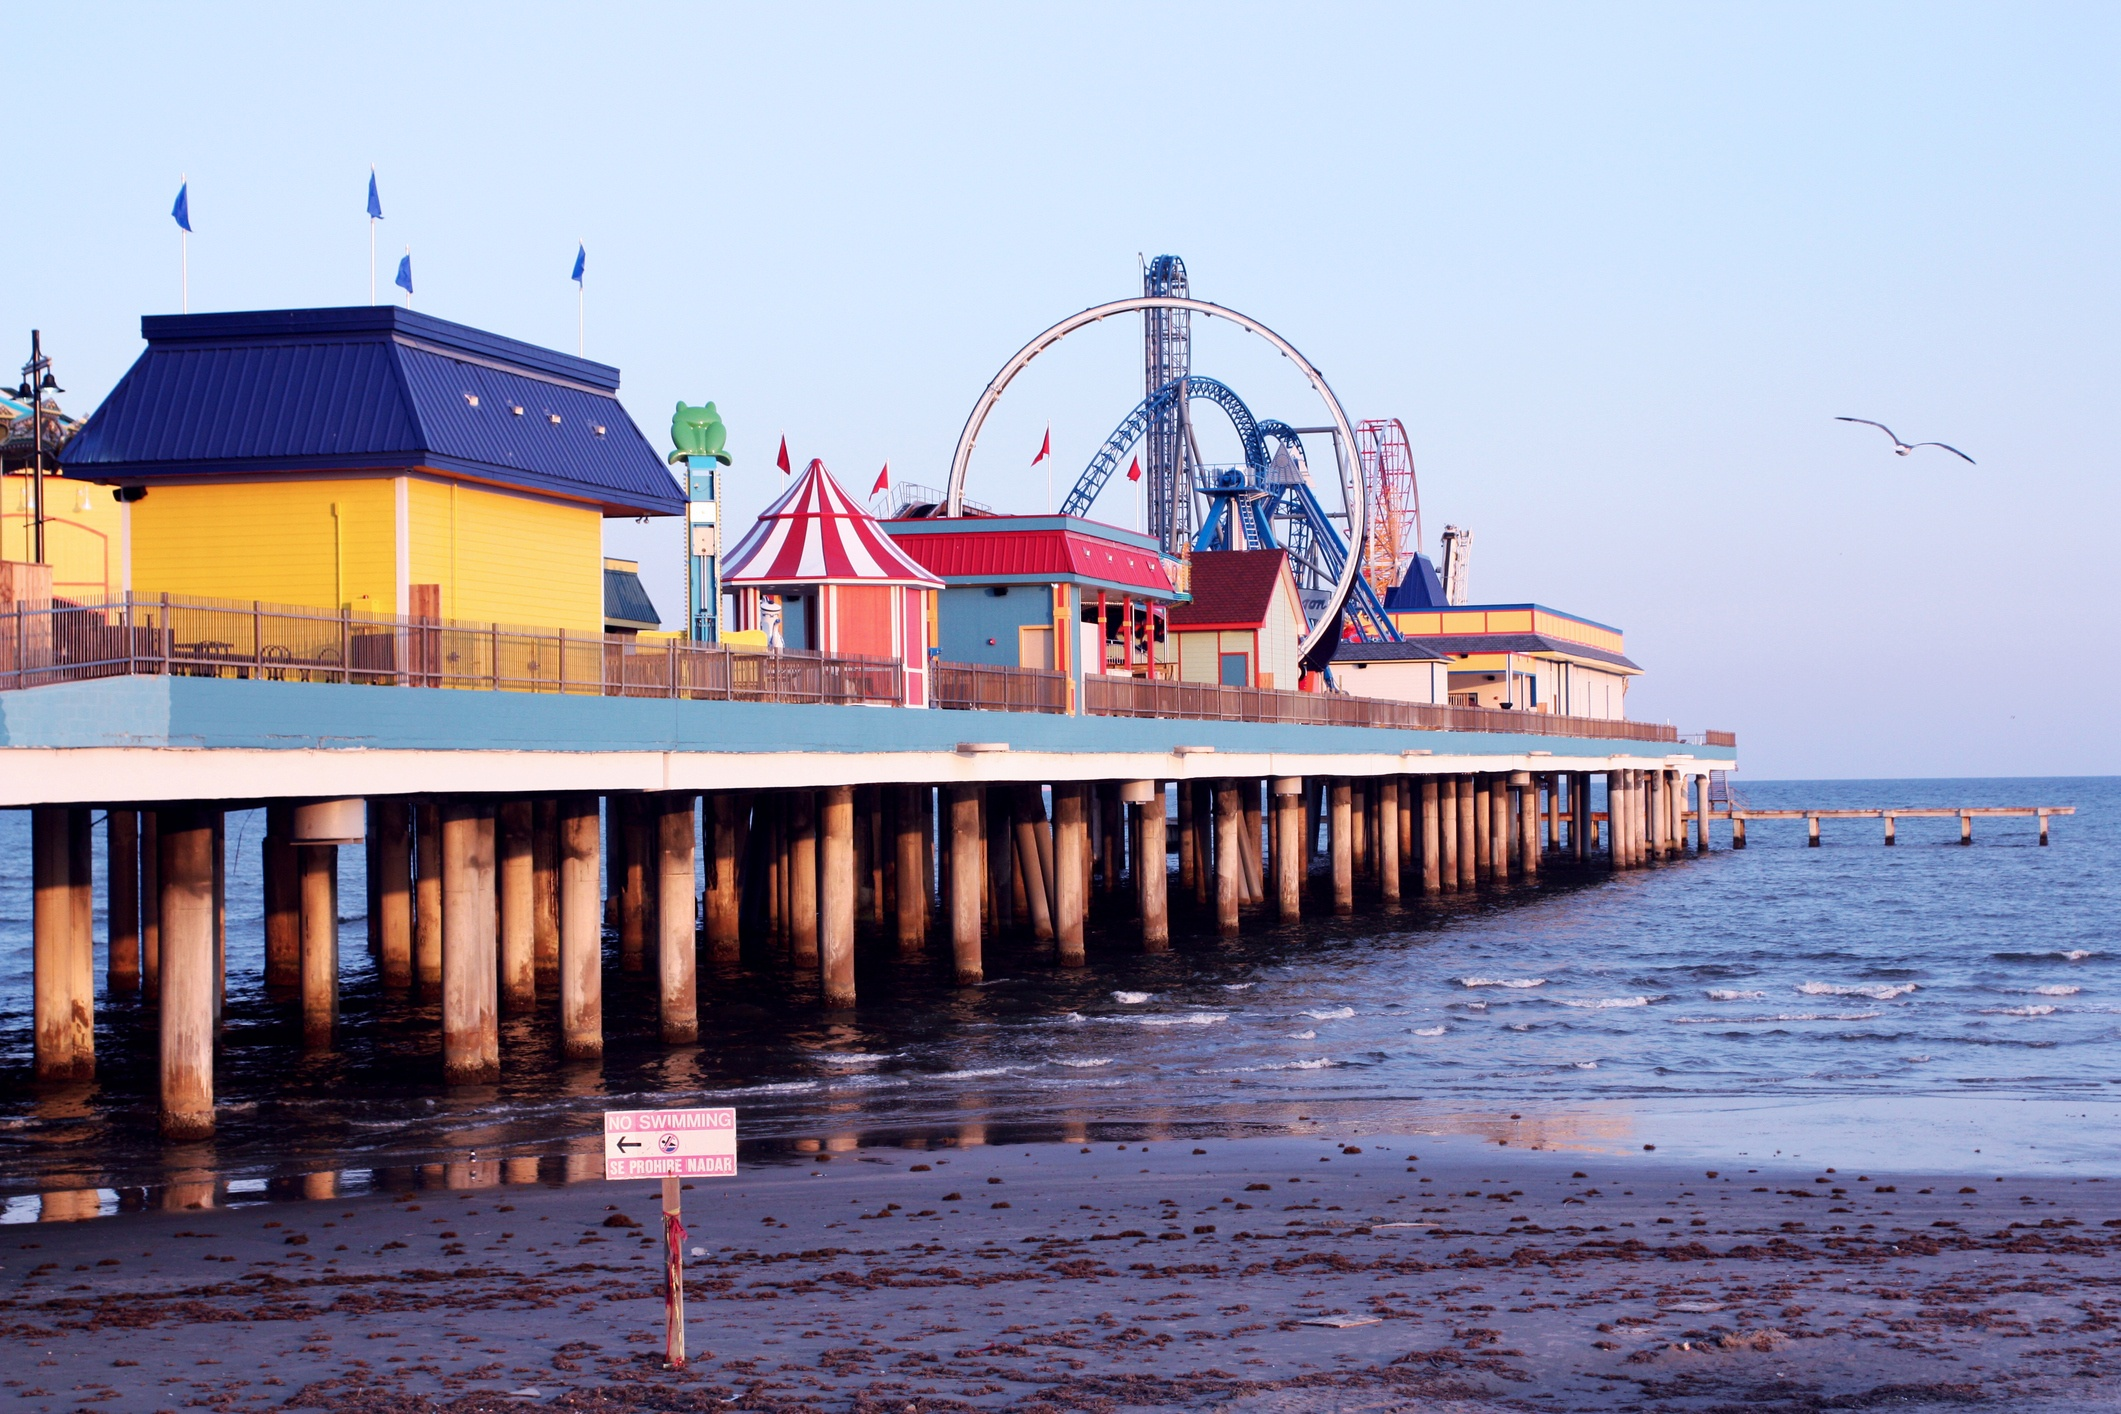 Galveston Texas boardwalk